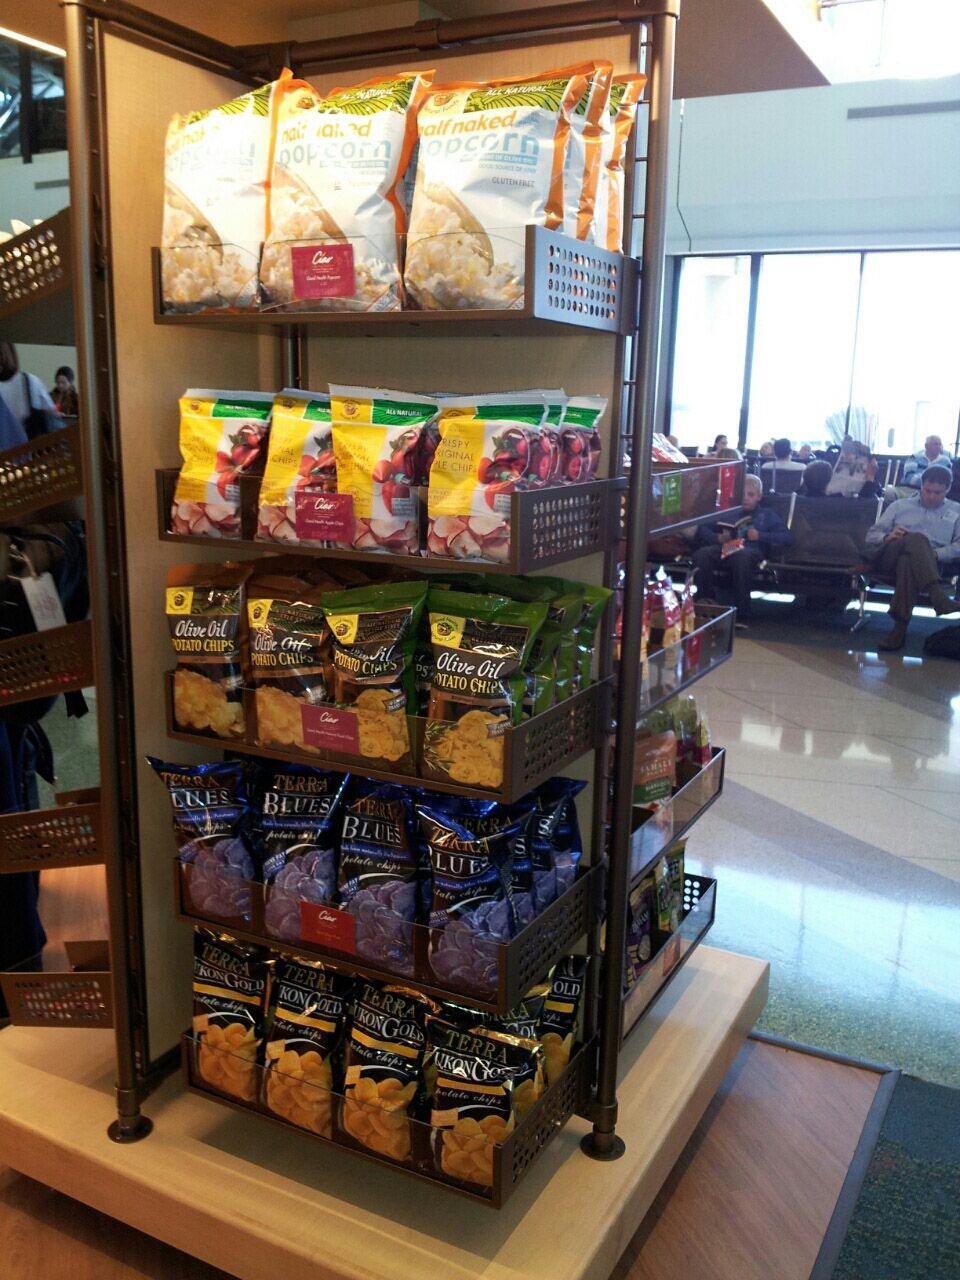 Our glutenfree snacks seen here are top flight at